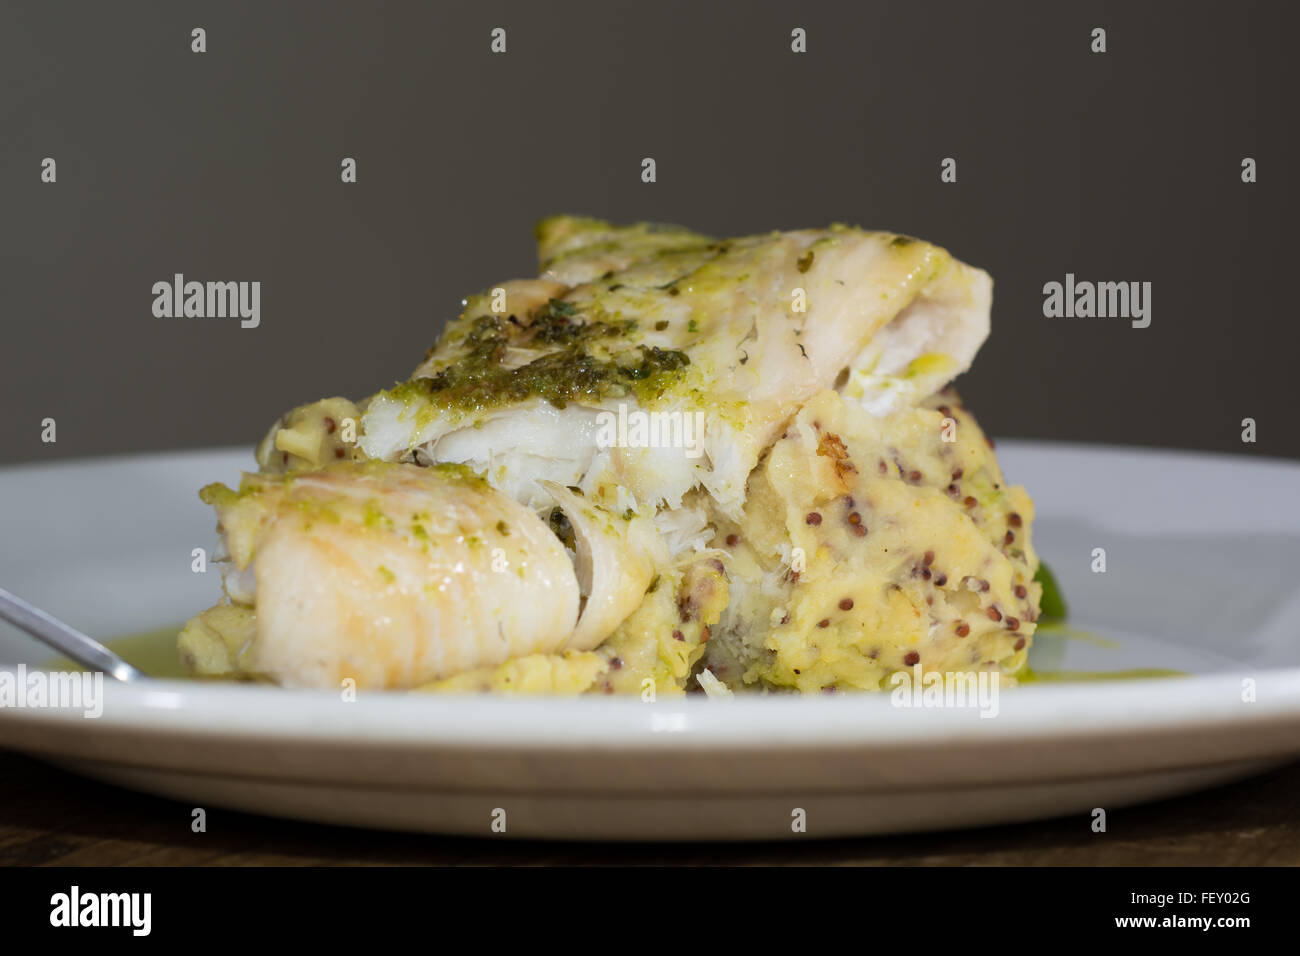 Haddock with whole grain mash and garlic parsley butter. French restaurant prepared fish dish with mashed potato - Stock Image